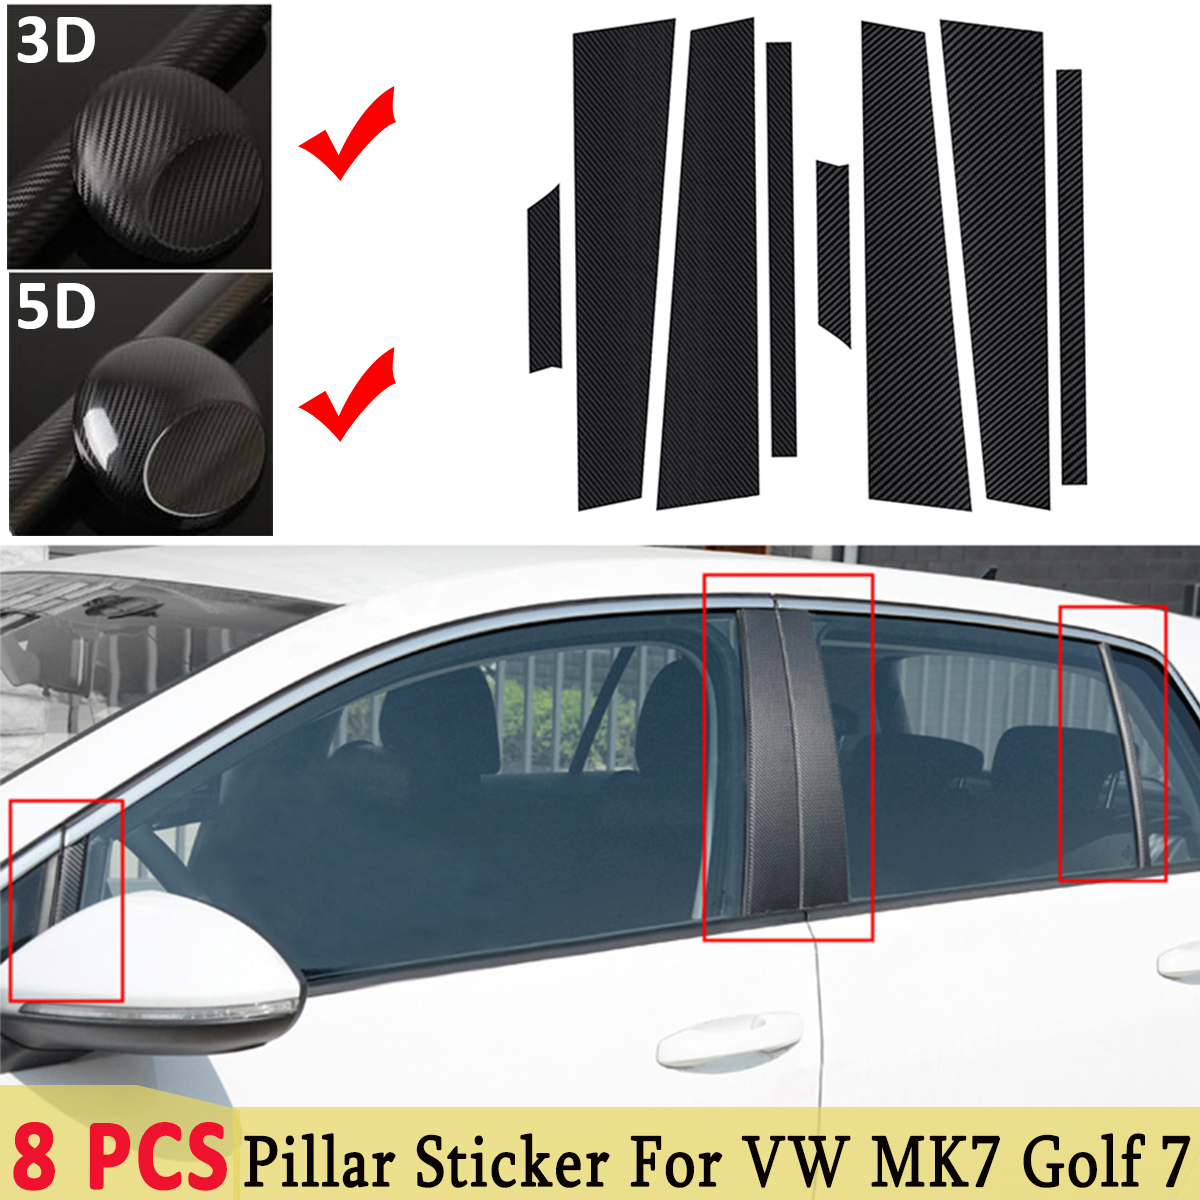 3D / 5D For <font><b>Volkswagen</b></font> For VW MK7 <font><b>Golf</b></font> <font><b>7</b></font> Accessories <font><b>Carbon</b></font> Fiber Style Auto Window Frame ABC Pillar Film Sticker Decals Trim image